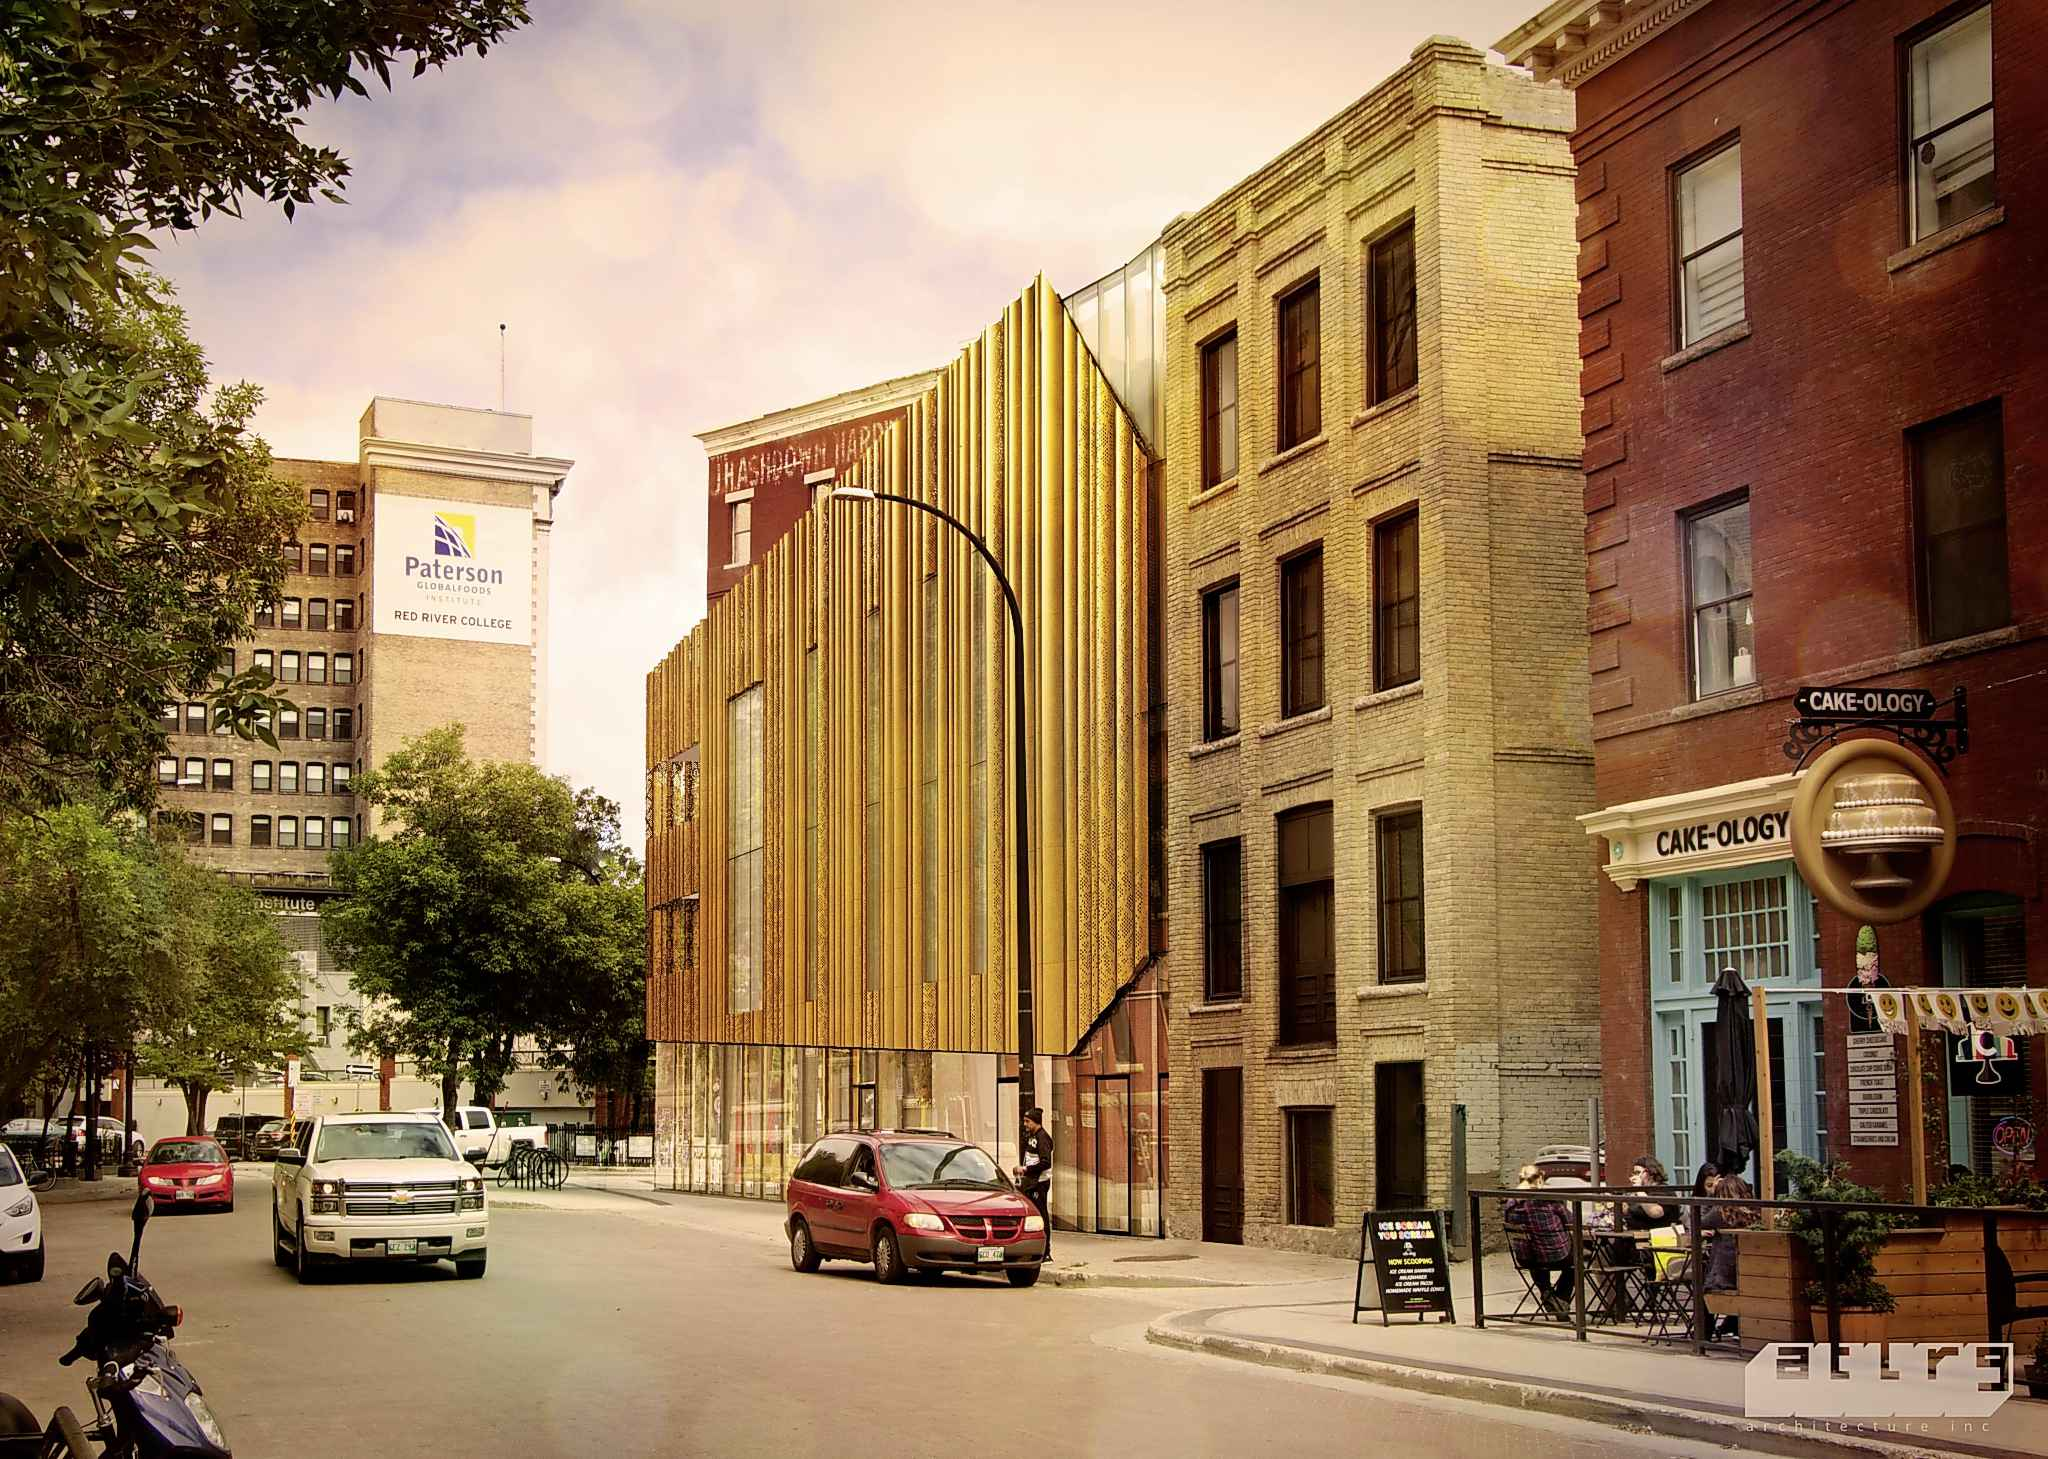 The former Reliable service station, on the wedge-shaped corner at 98 Albert St., is also on the commemorative list. There is a proposal to replace it with this building. (AtLRG Architecture)